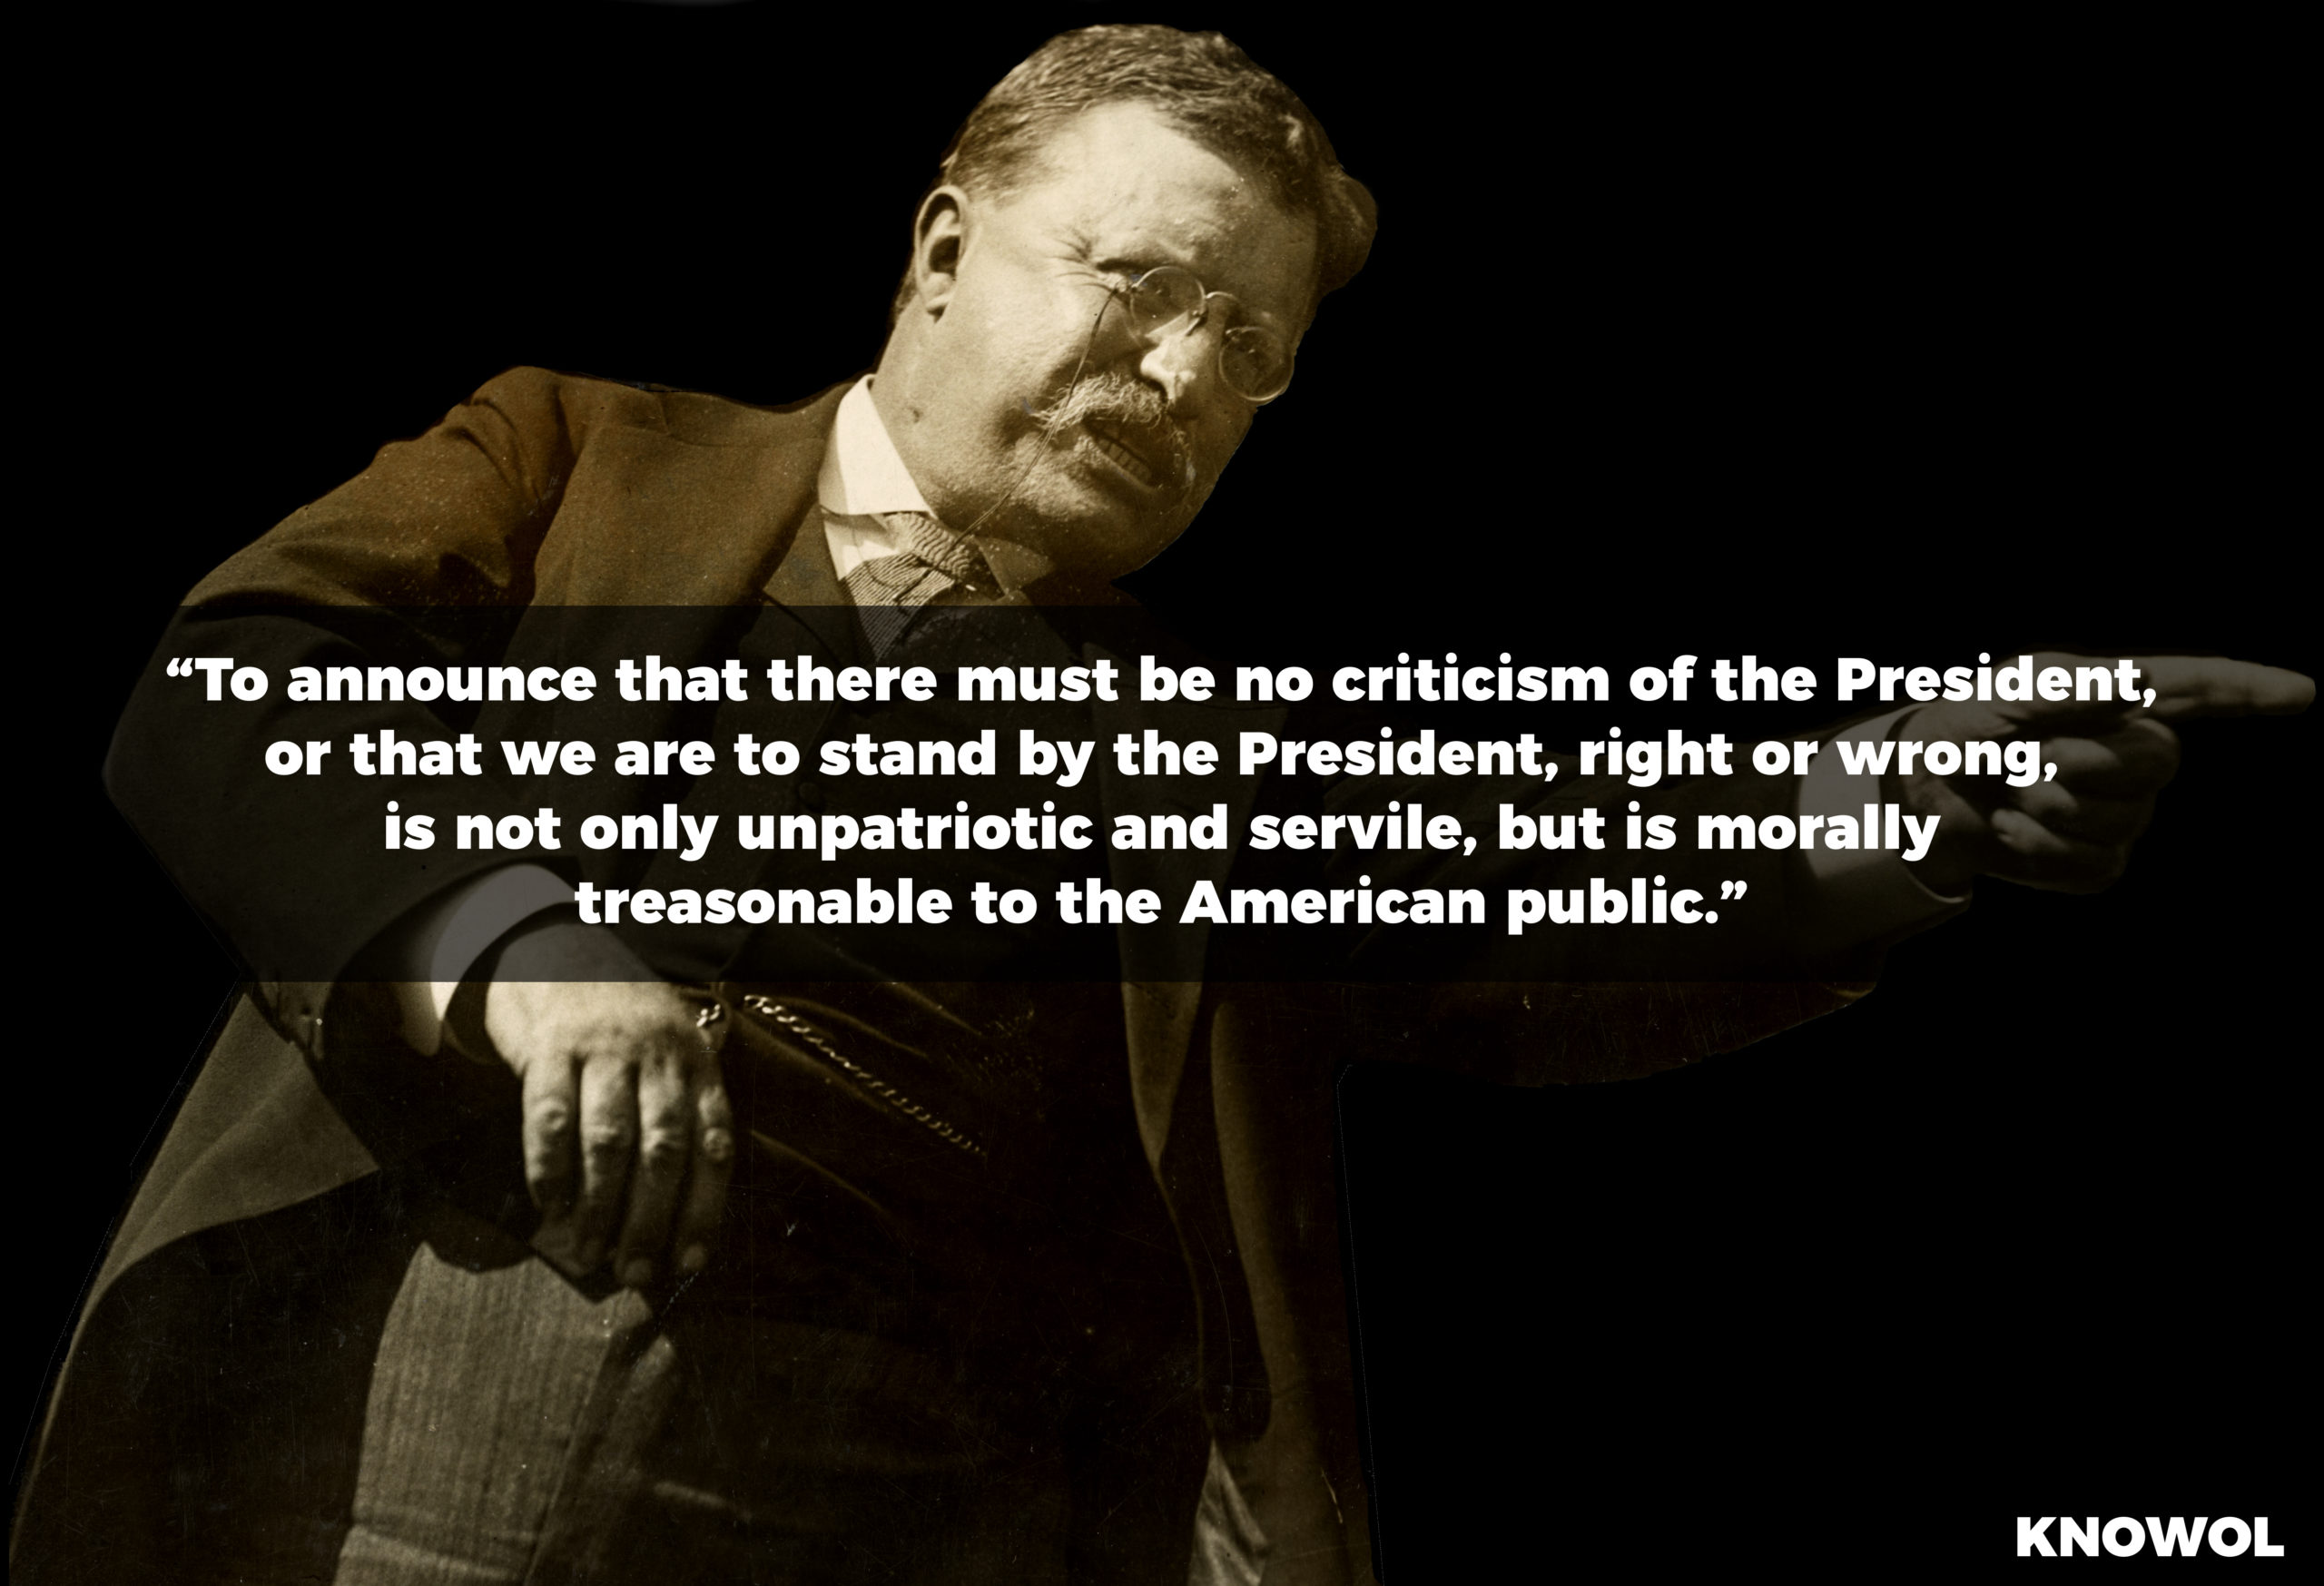 Theodore Roosevelt Quotes Theodore Roosevelt Discusses Criticism Of The President  Knowol